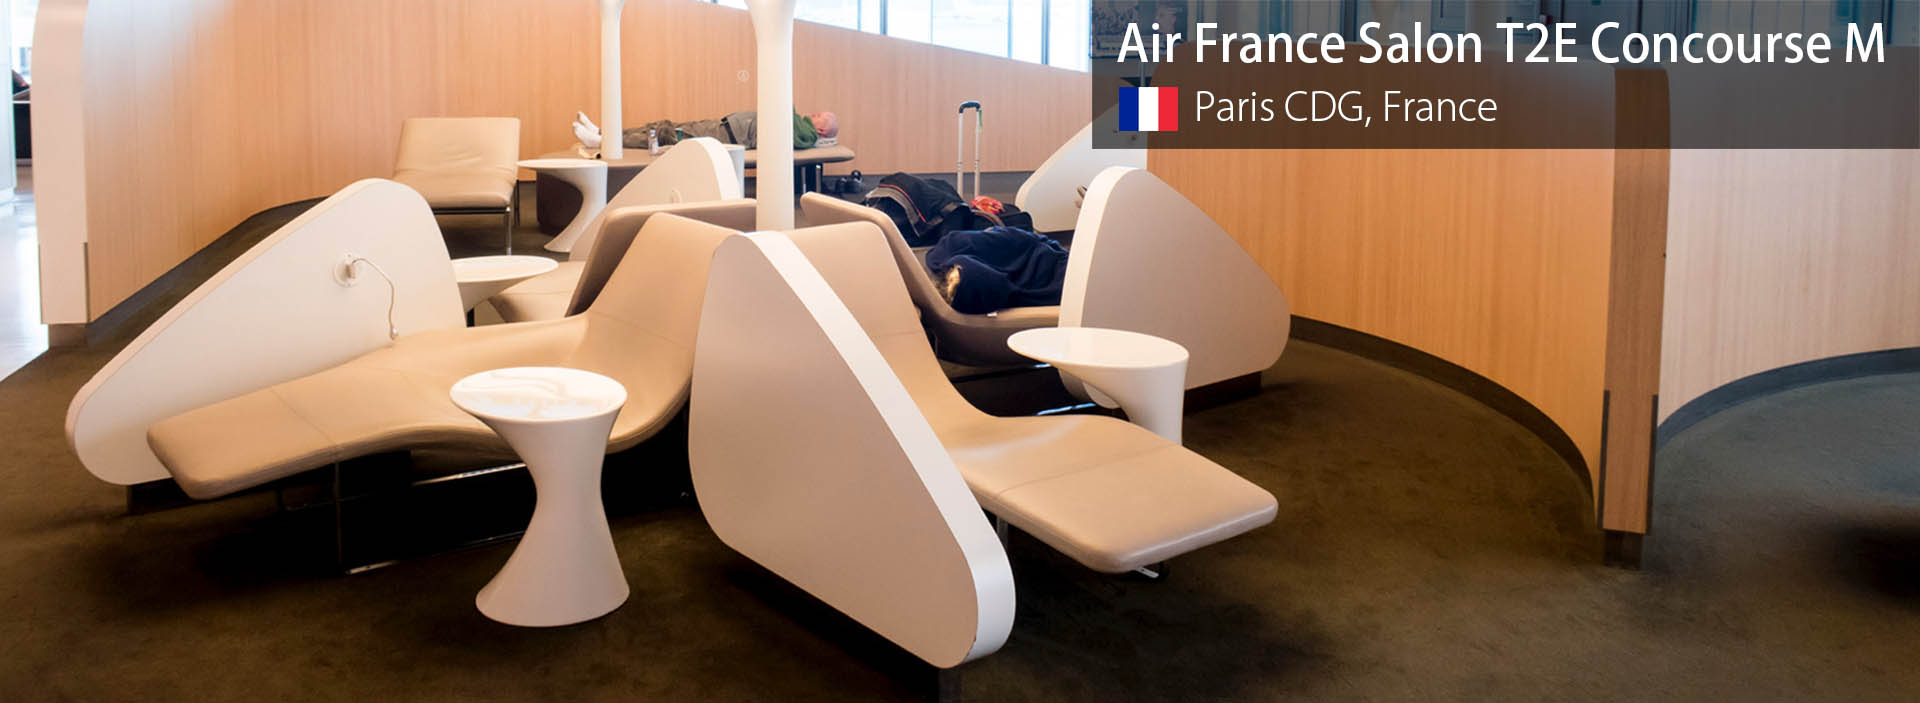 Review Air France Business Class Lounge Paris Cdg T2e Hall M